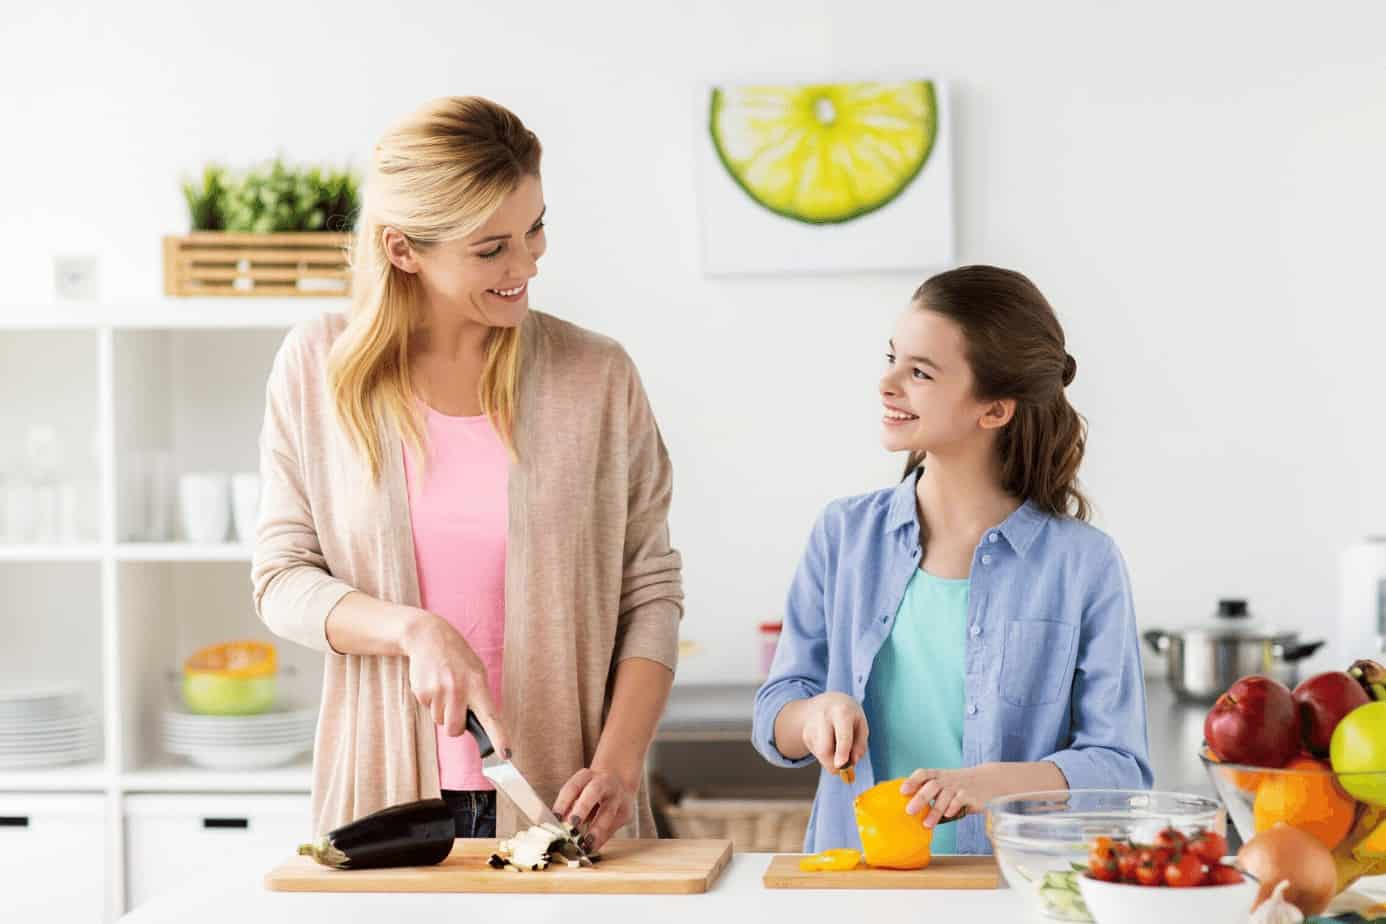 mother and daughter cooking together in the kitchen